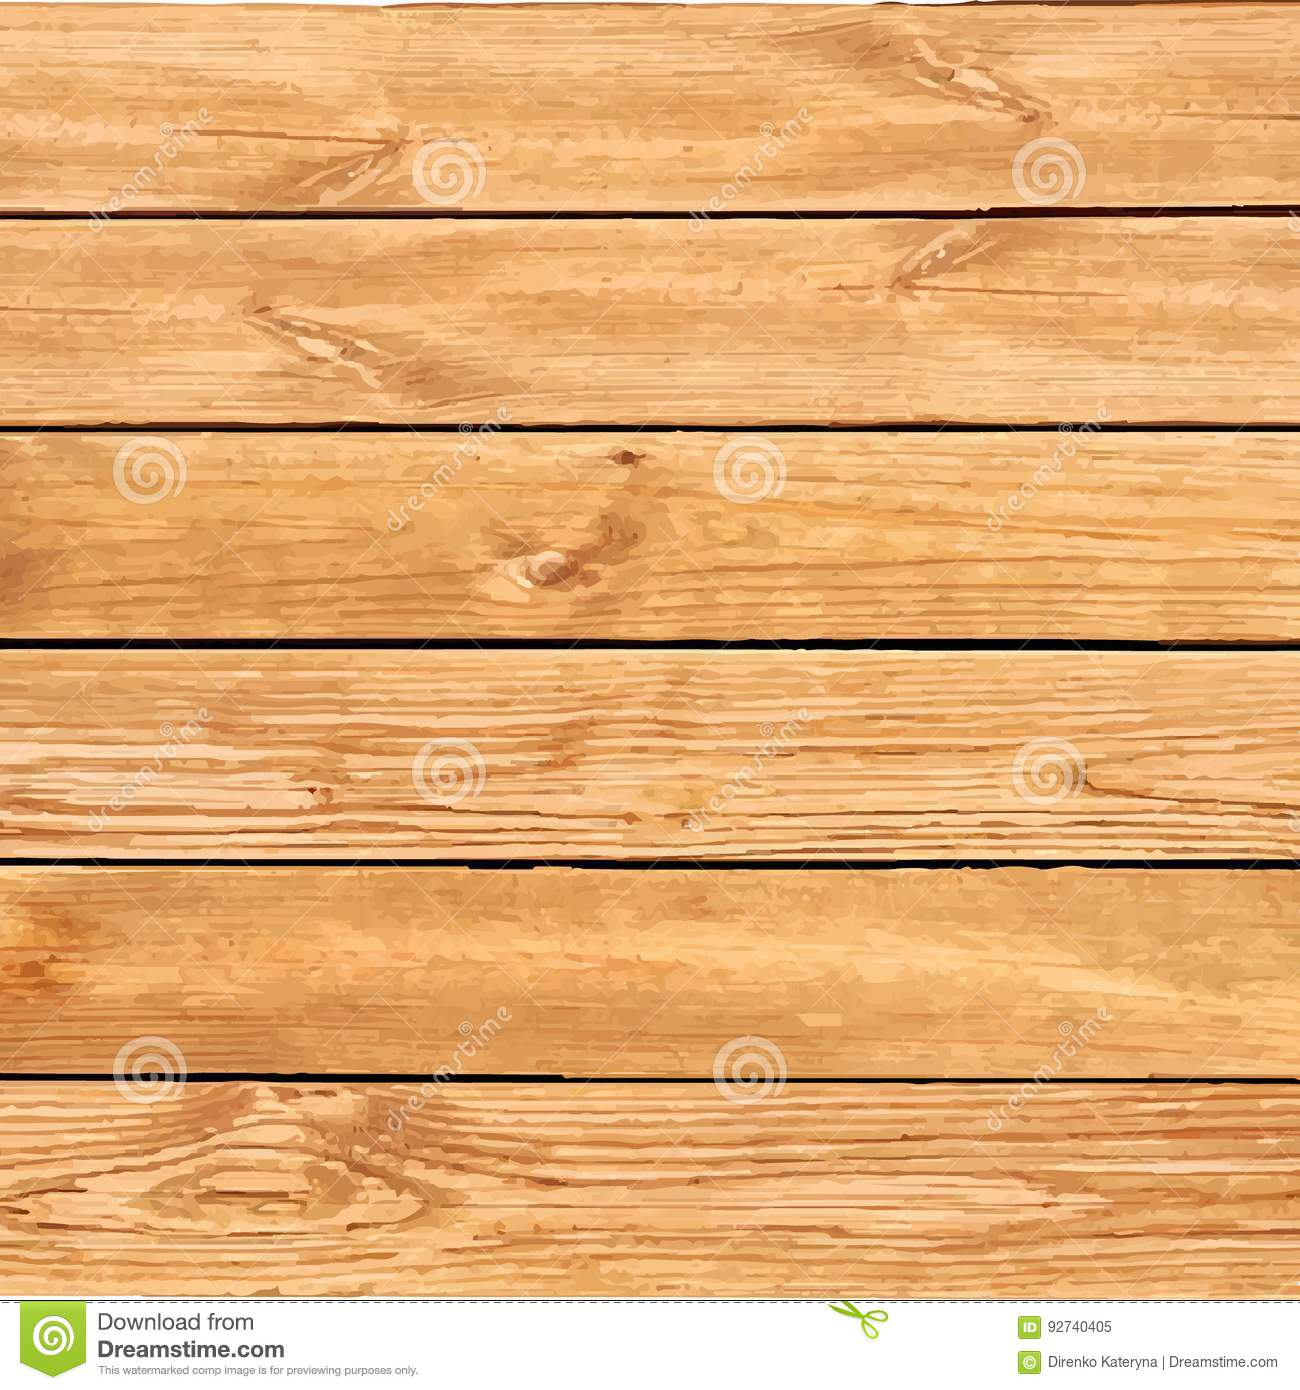 Vector wood texture with horizontal stripes.